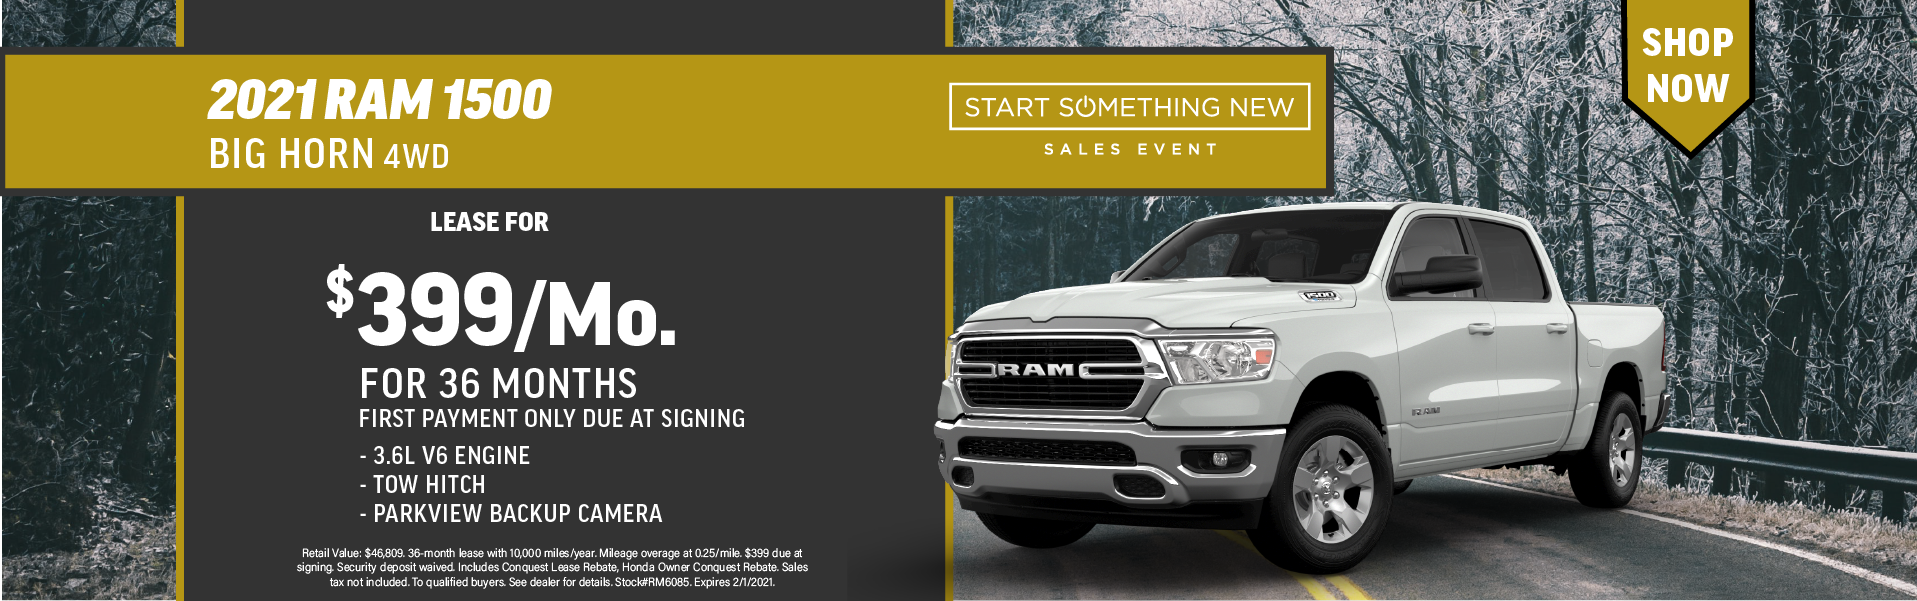 Quirk 2021 Ram 1500- January 2021